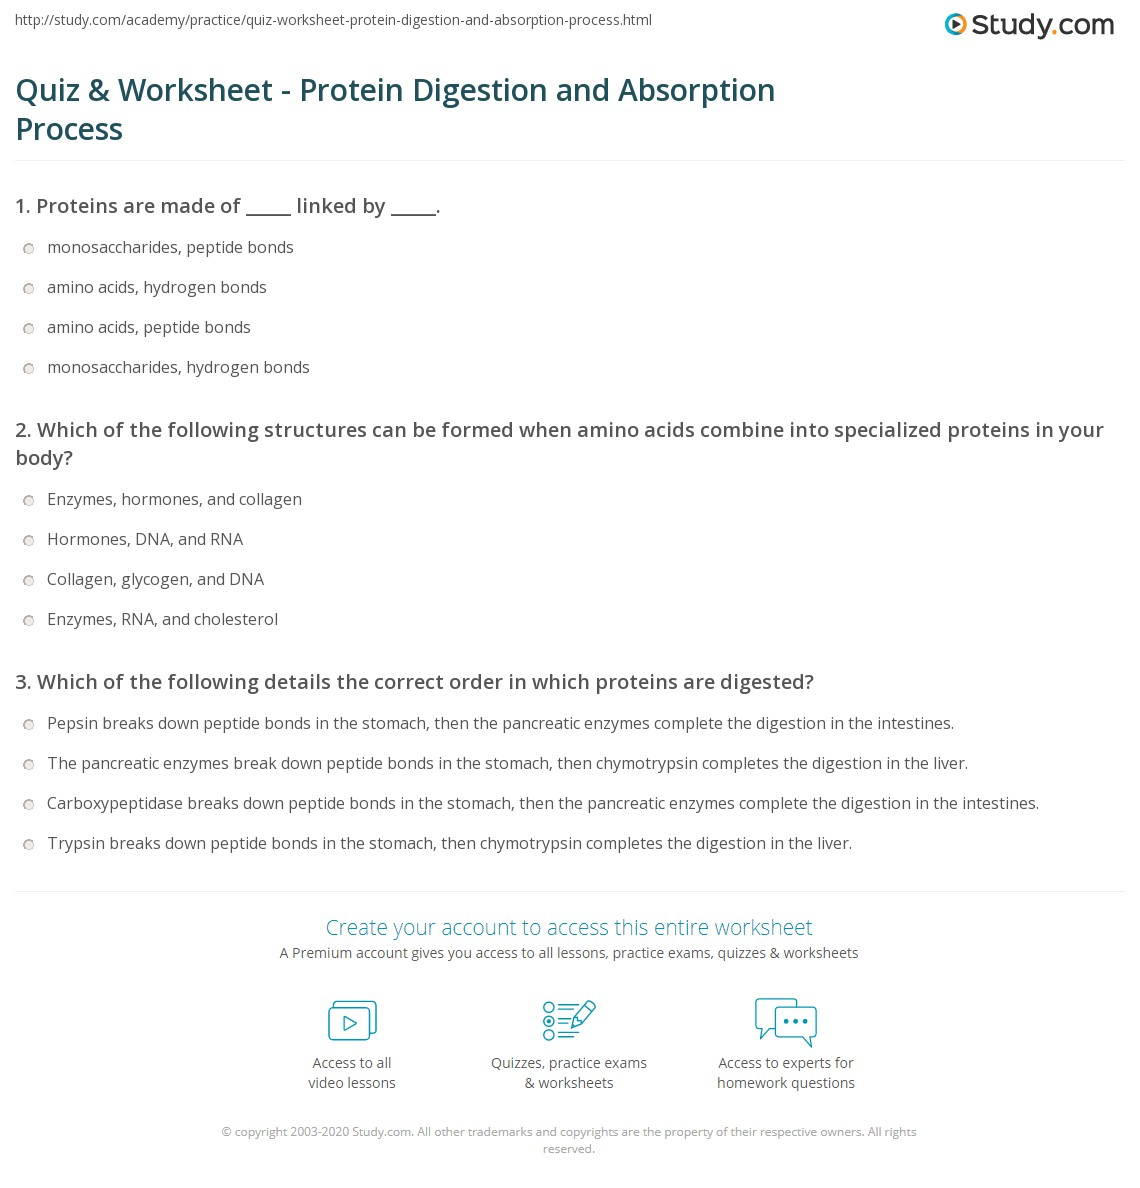 Quiz Worksheet Protein Digestion And Absorption Process Study Com